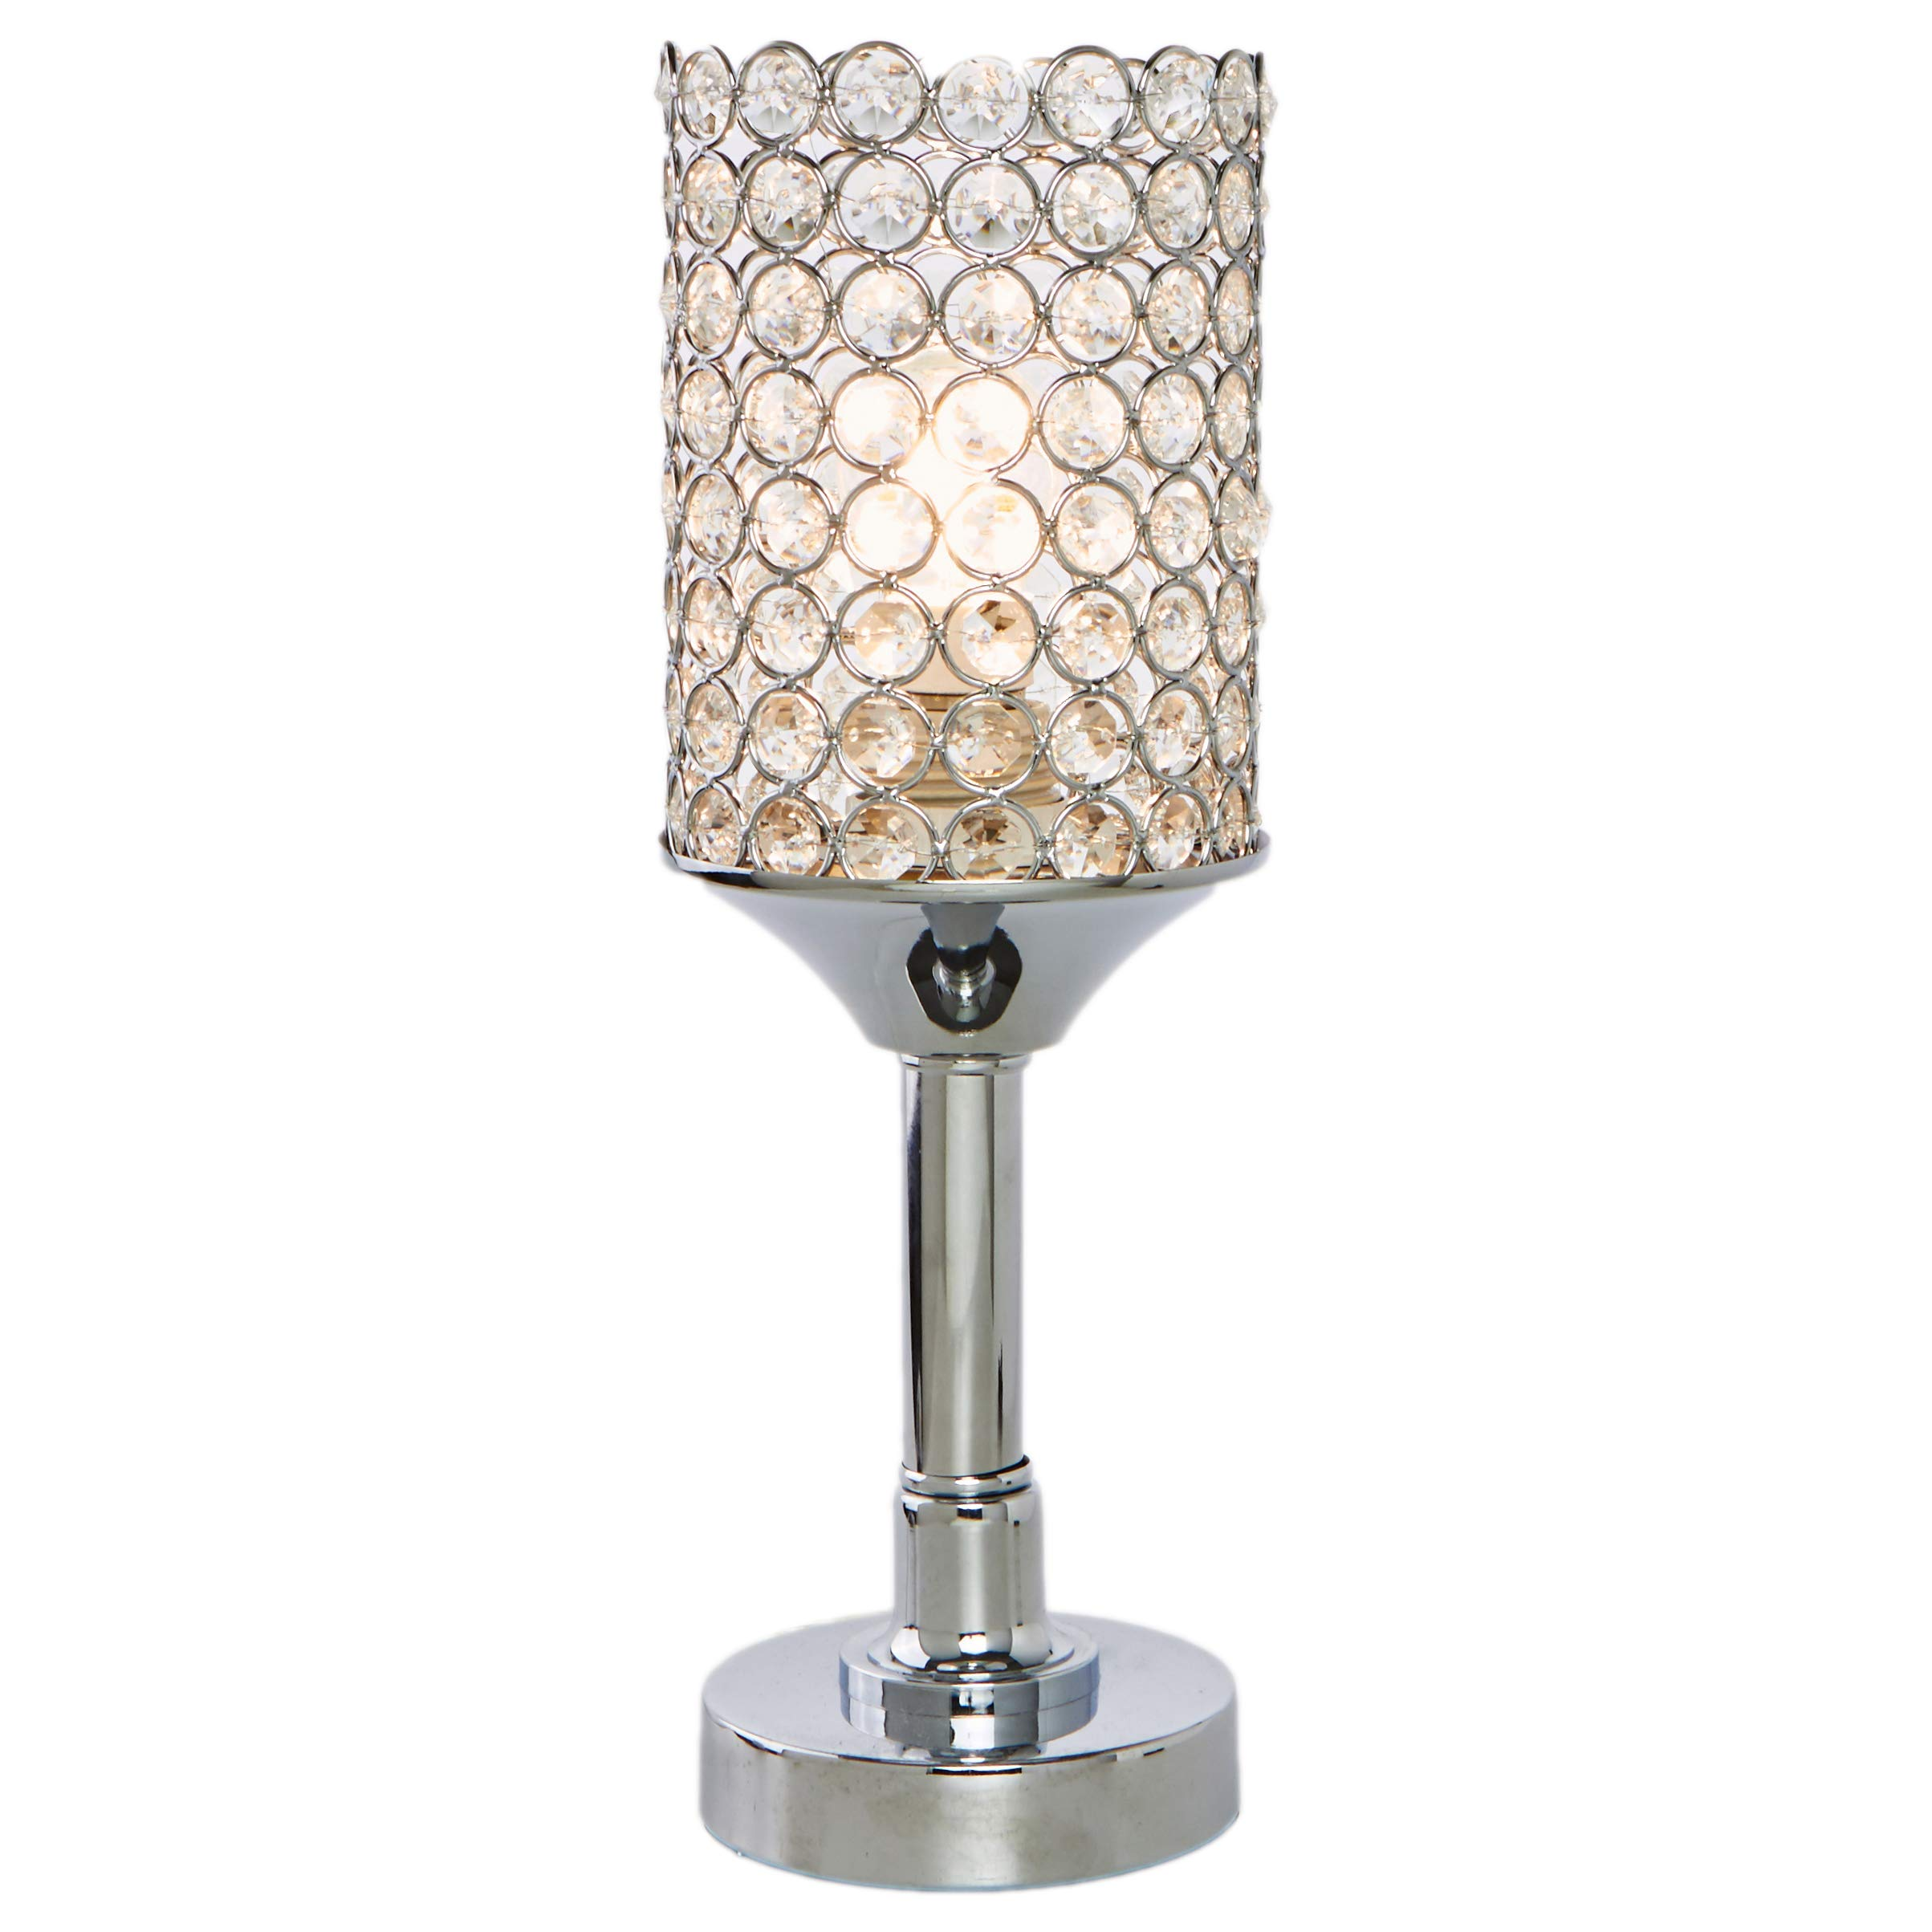 POPILION Superior Quality Noble Elegant Crystal Table Lamp,Inlaid Round Crystal,Small Lamp by POPILION